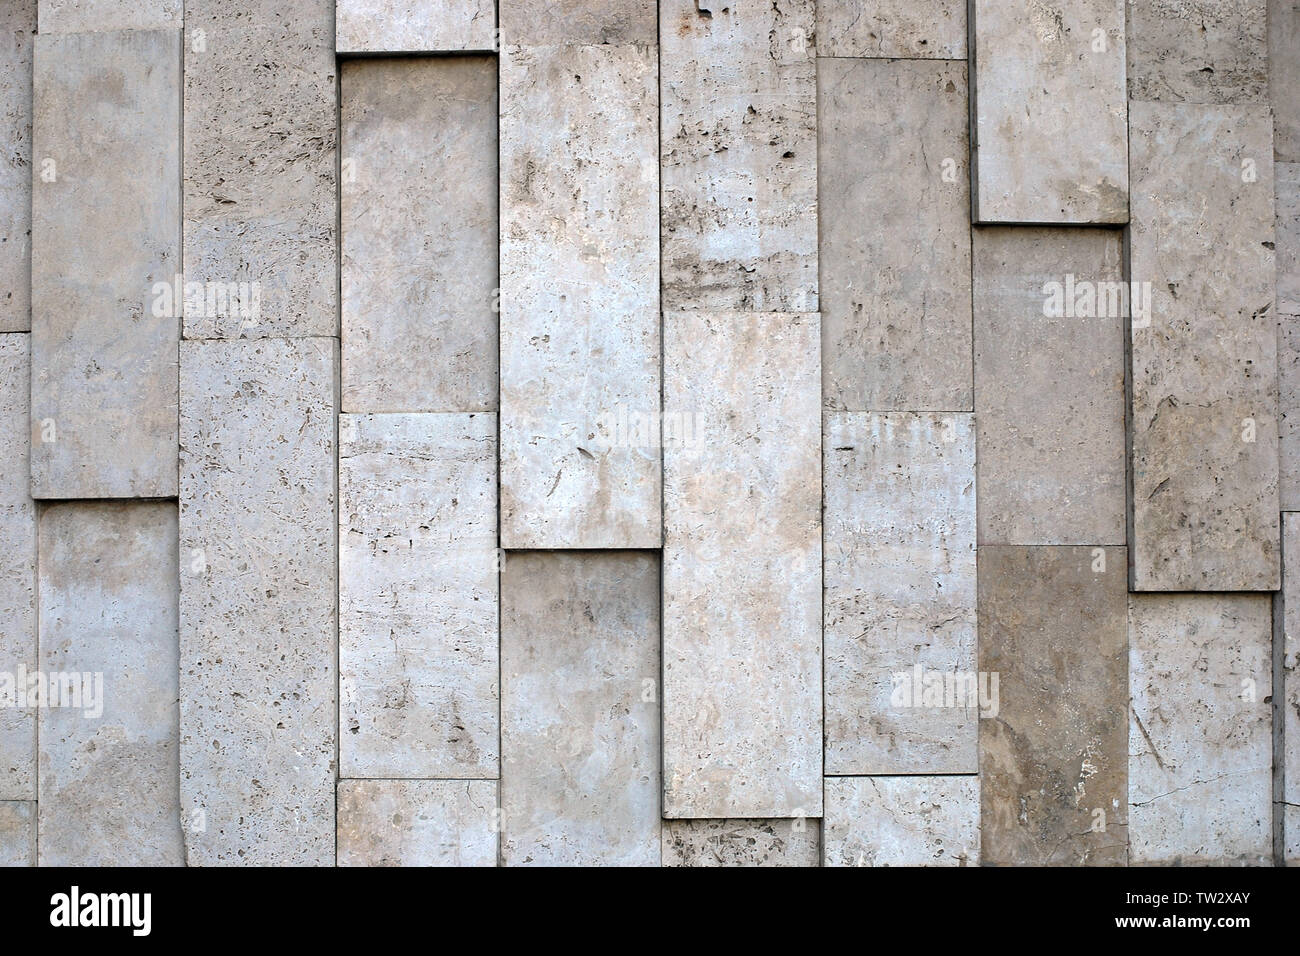 Natural stone wall of big vertical blocks of porous material in variety of beige tones. - Stock Image